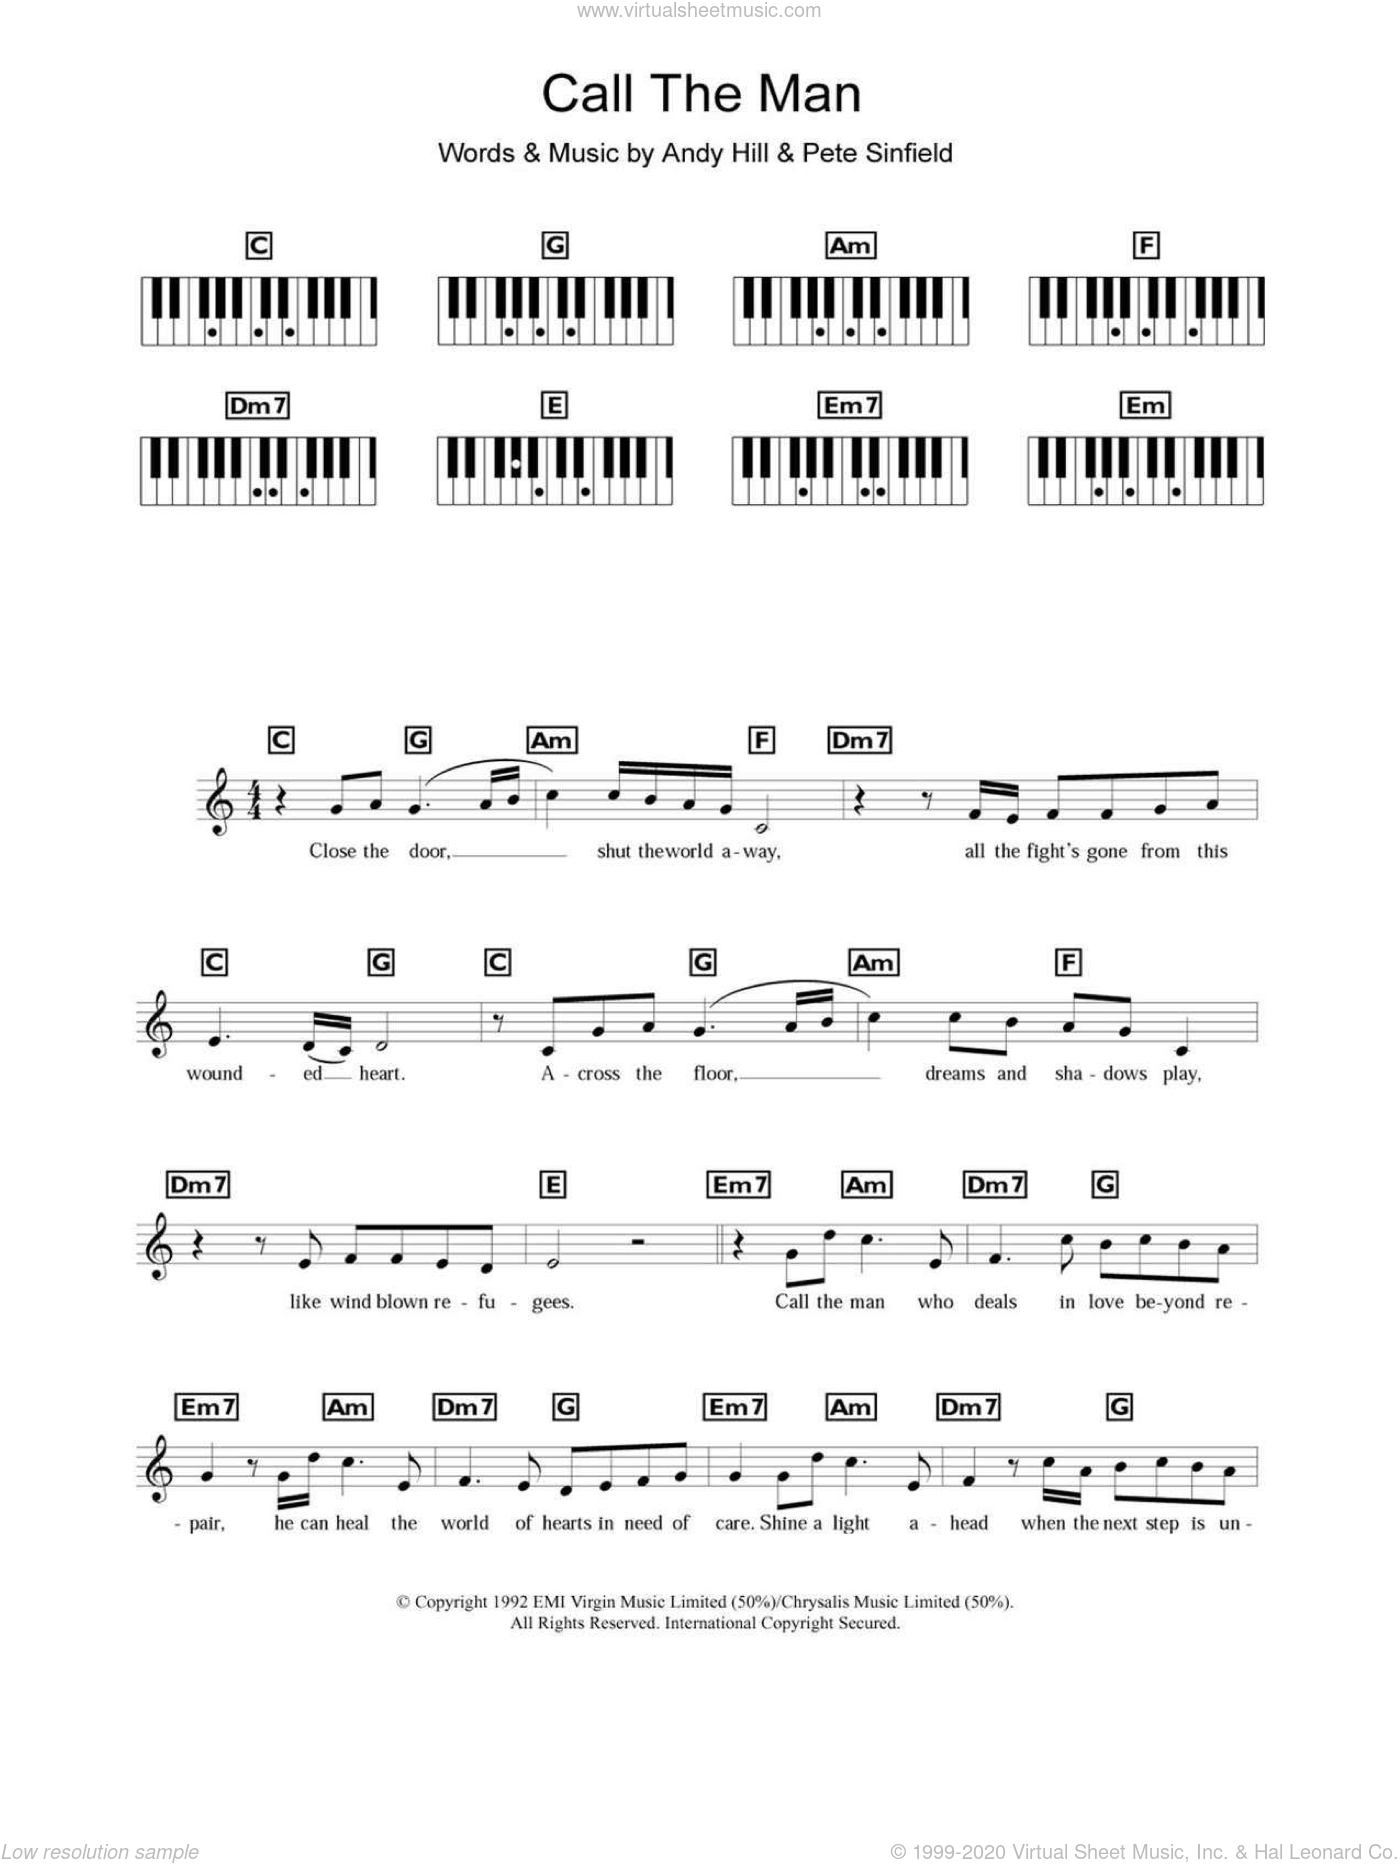 Call The Man sheet music for piano solo (chords, lyrics, melody) by Pete Sinfield